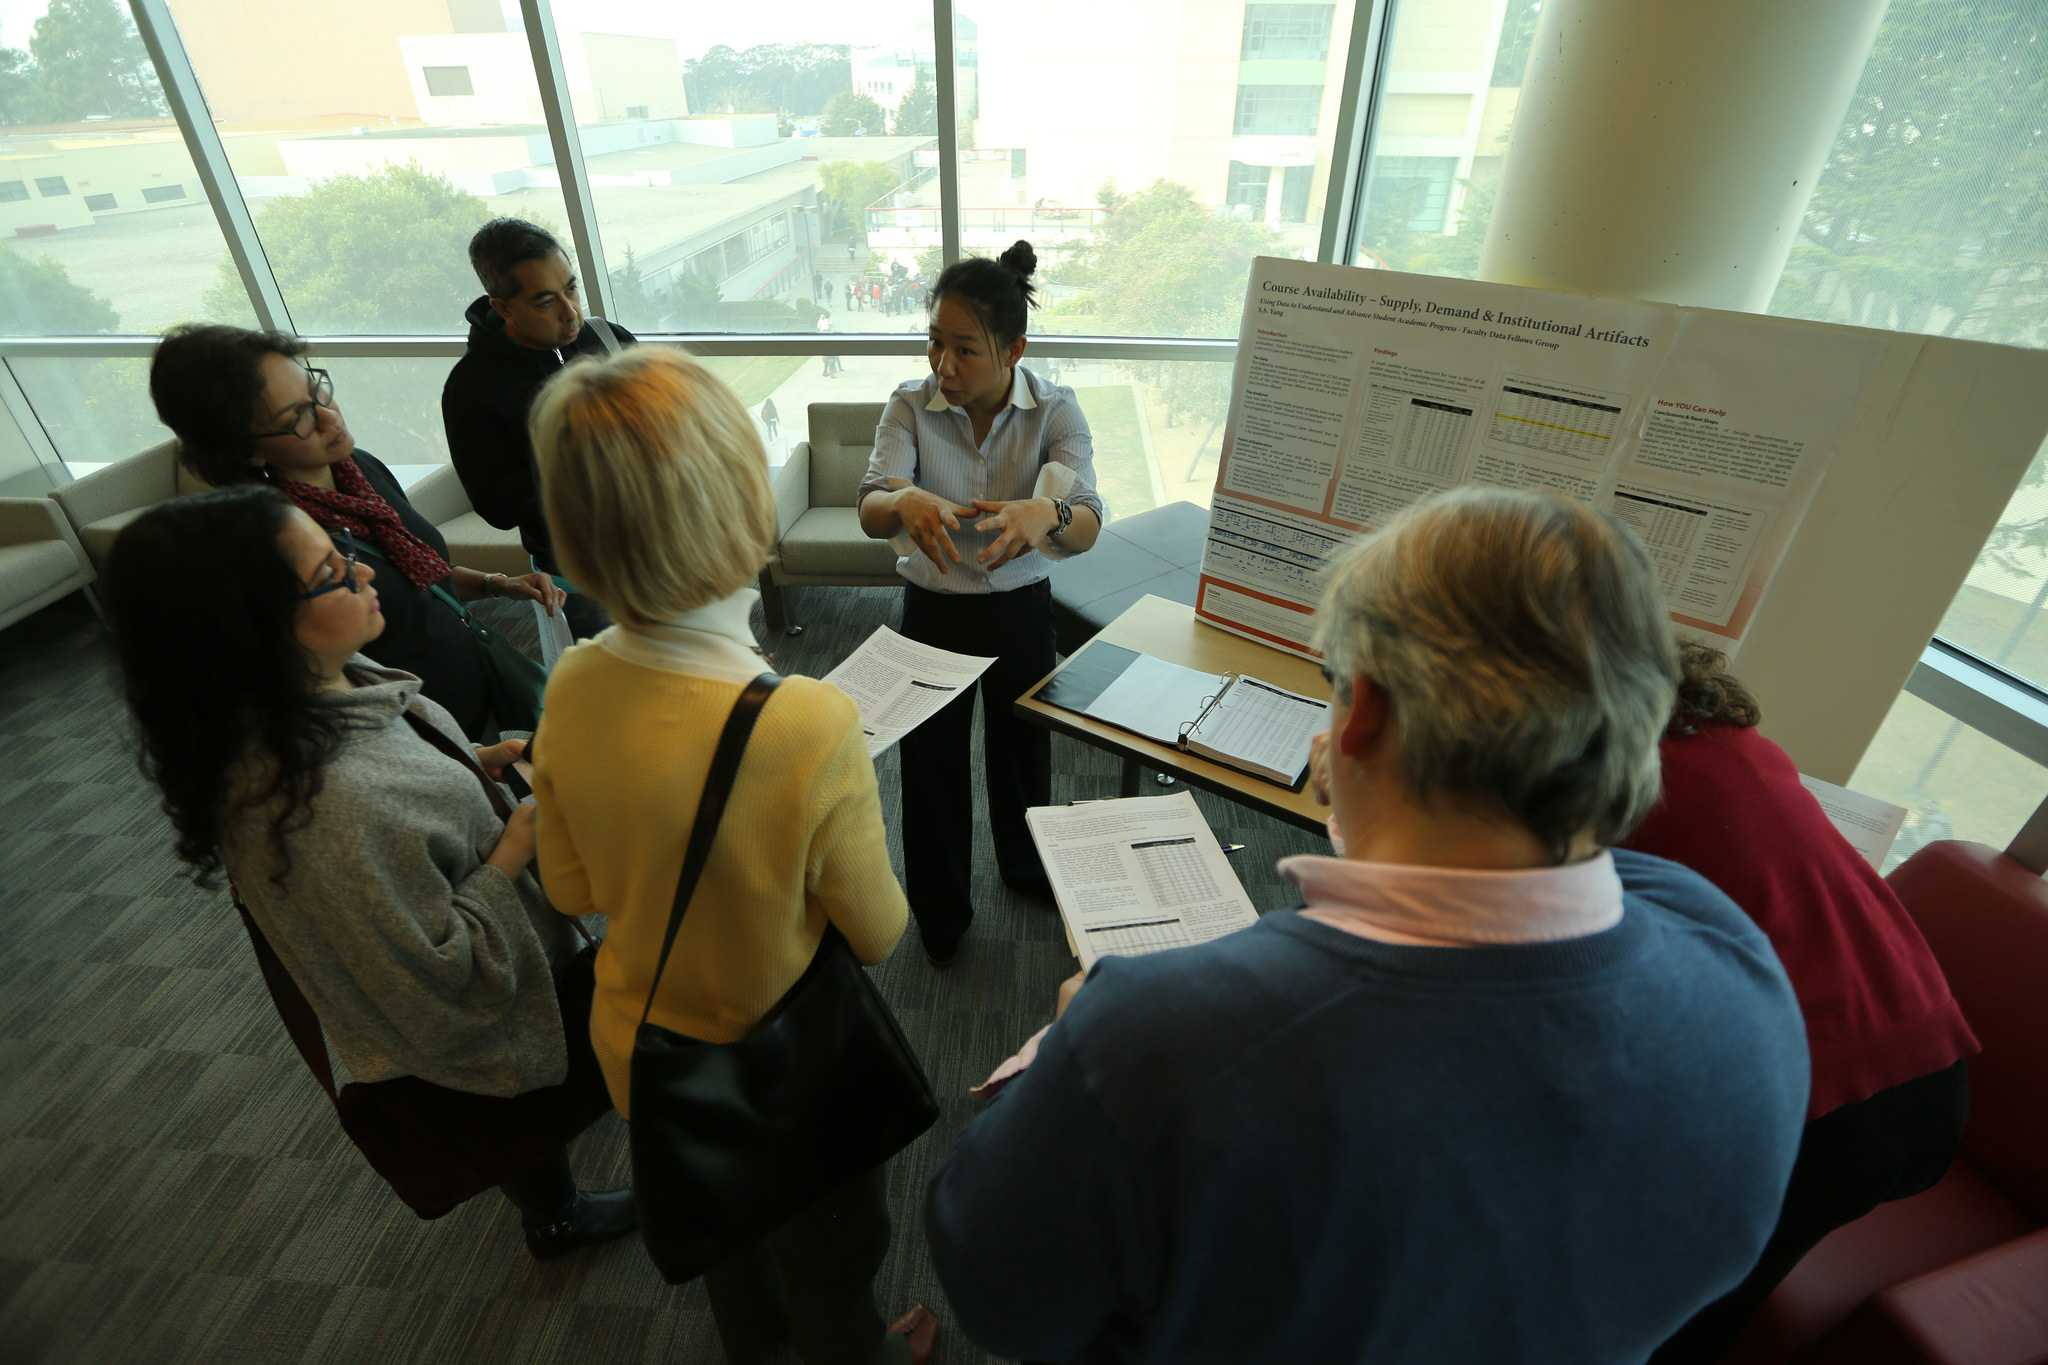 Sybil S. Yang, an SF State hospitality and tourism management assistant professor, presents her findings during the SF State Faculty Data Fellows Group presentation on student academic progress in the J. Paul Leonard Library Wednesday Dec. 2, 2015. (Photo by Joel Angel Juárez / Xpress)